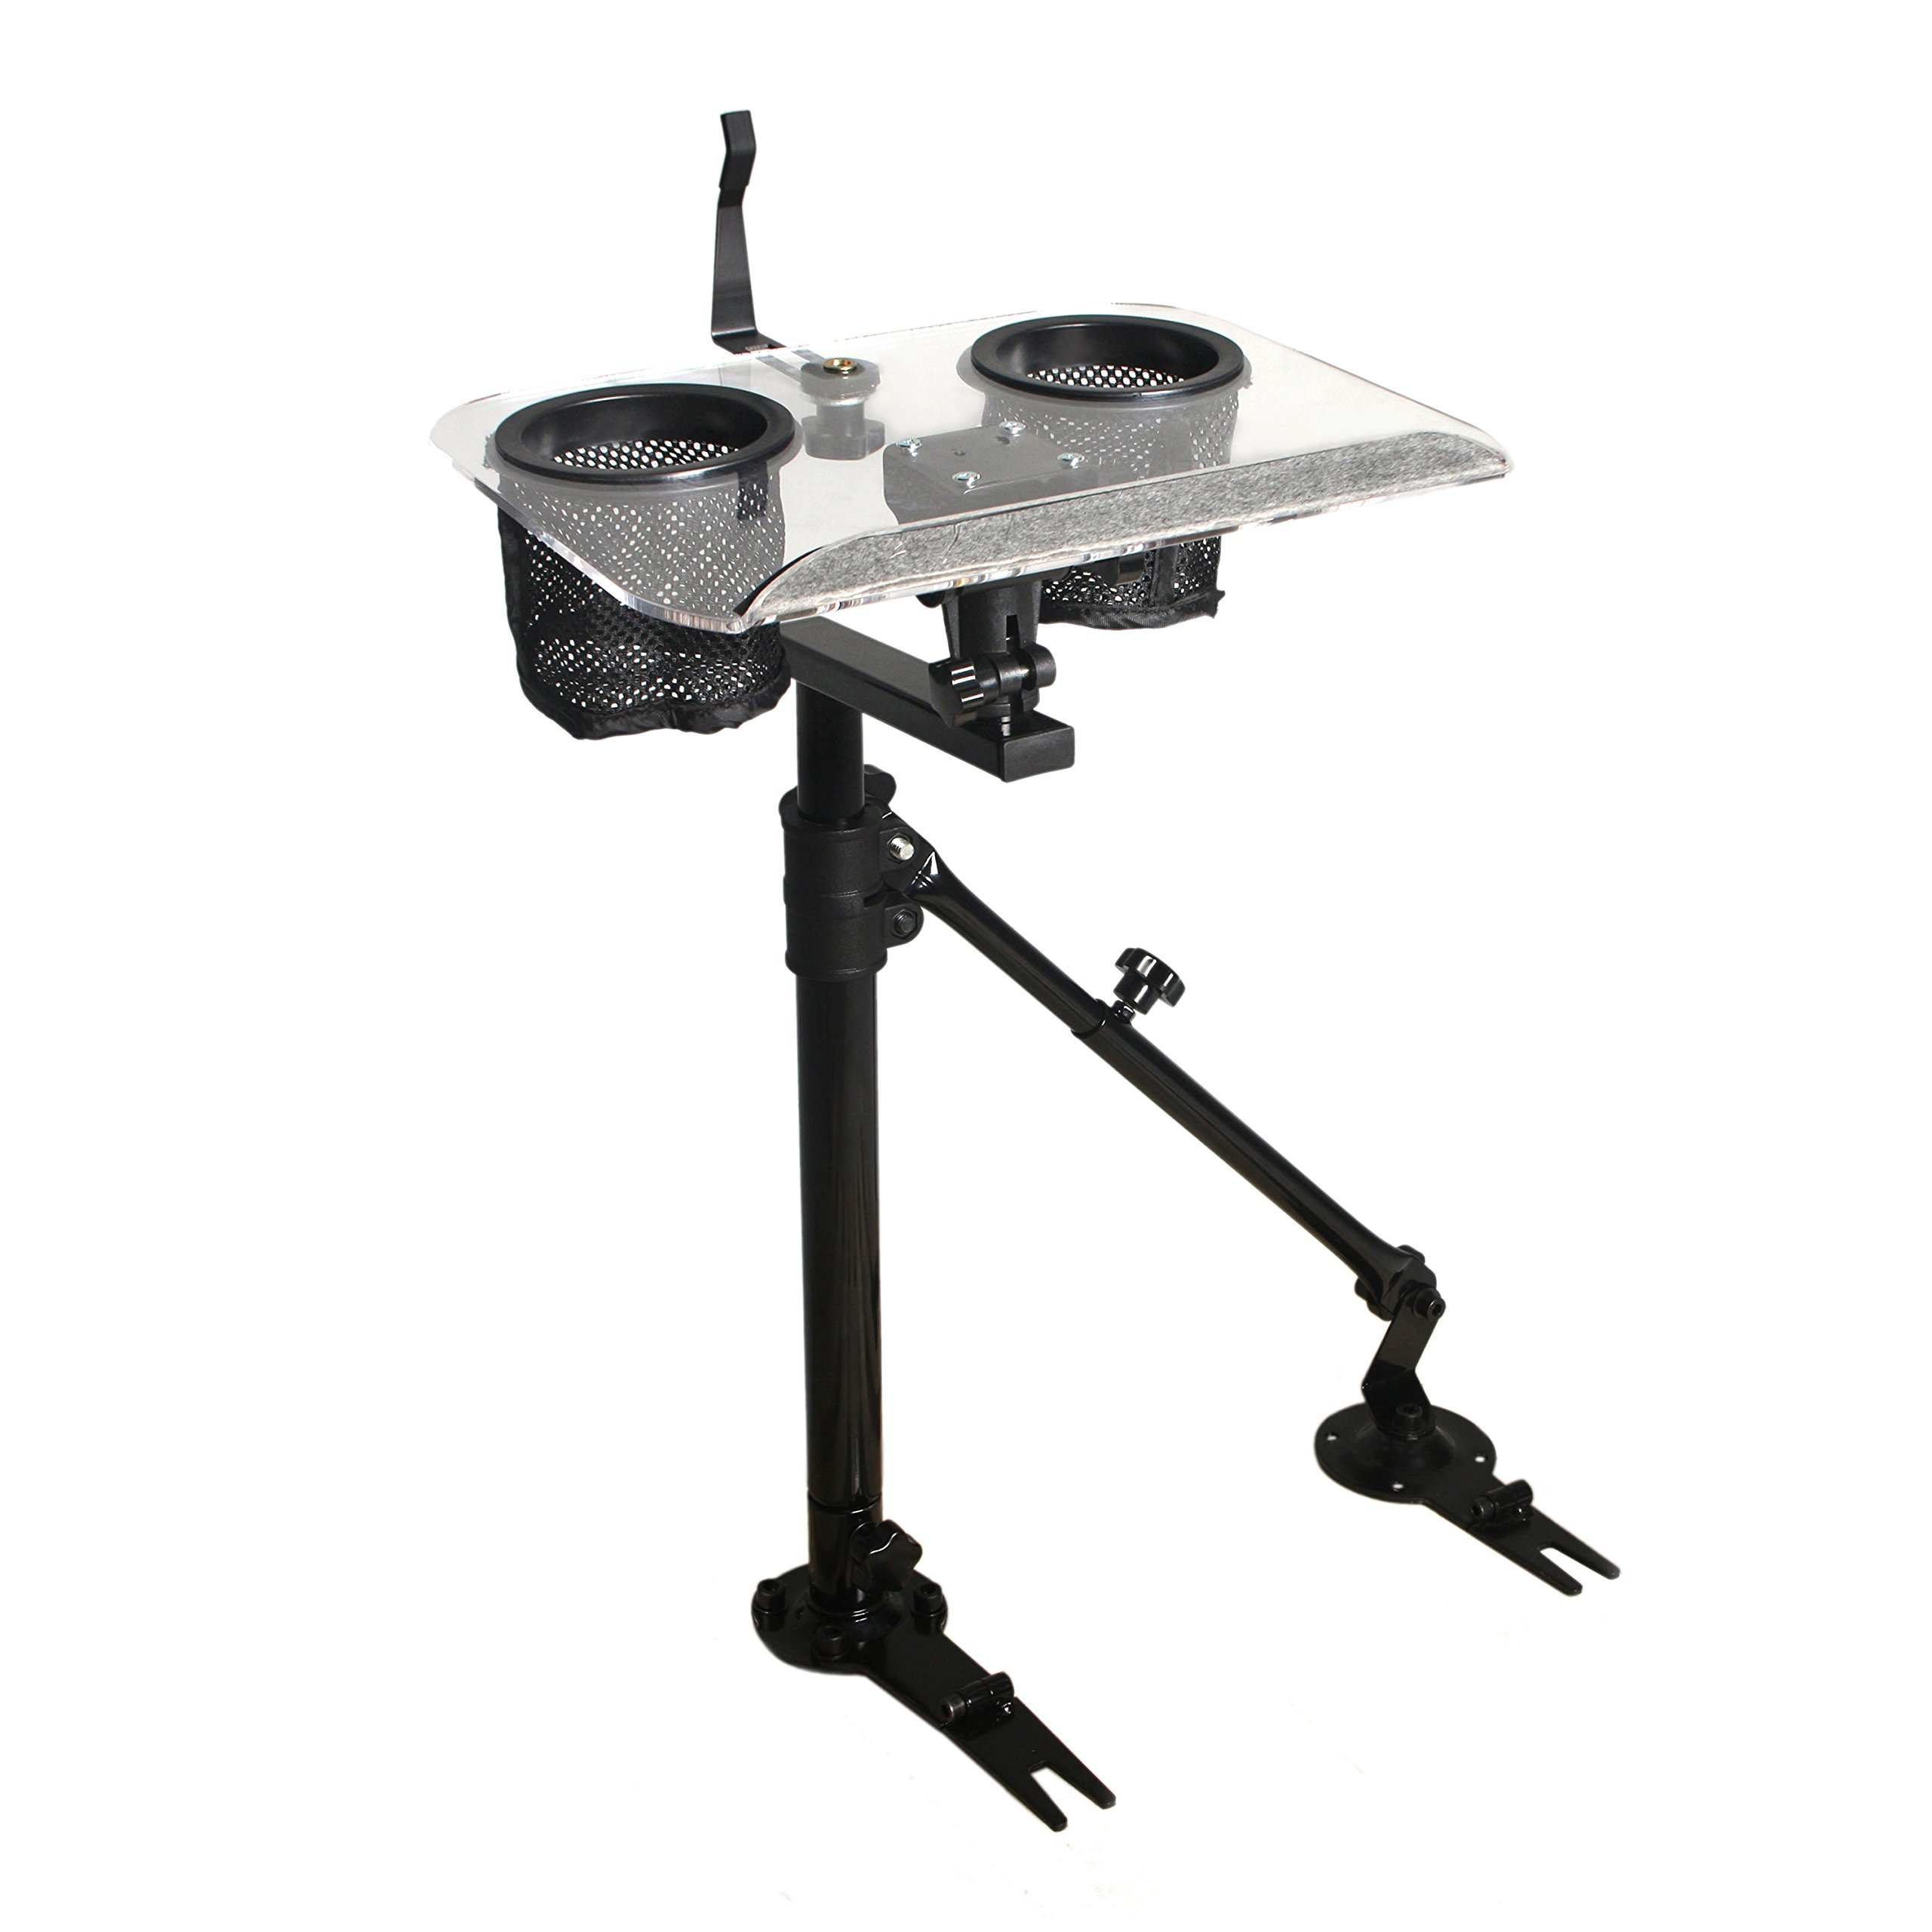 AA-Products K005-A3 Laptop Mount Stand Holder For Car With Non-Drilling Bracket and Supporting Arm Kit